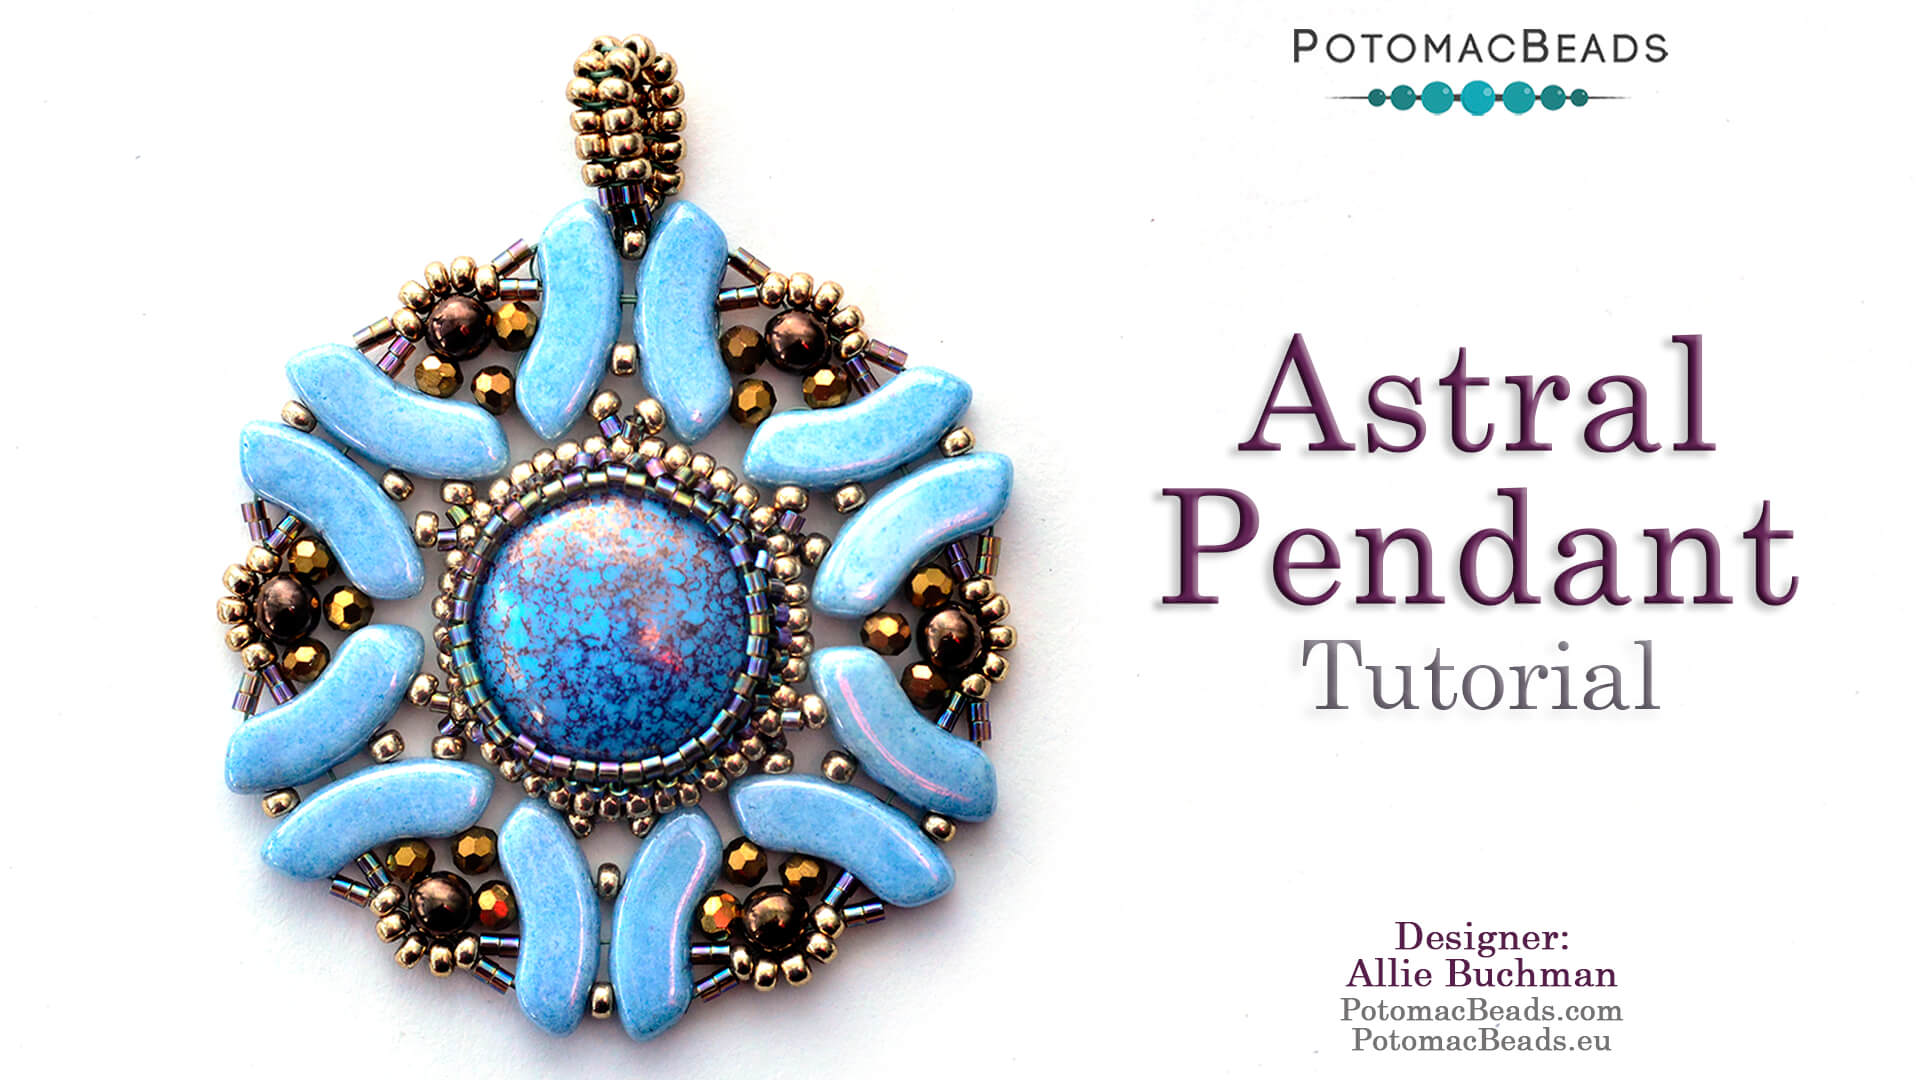 How to Bead Jewelry / Videos Sorted by Beads / RounDuo® & RounDuo® Mini Bead Videos / Astral Pendant Tutorial